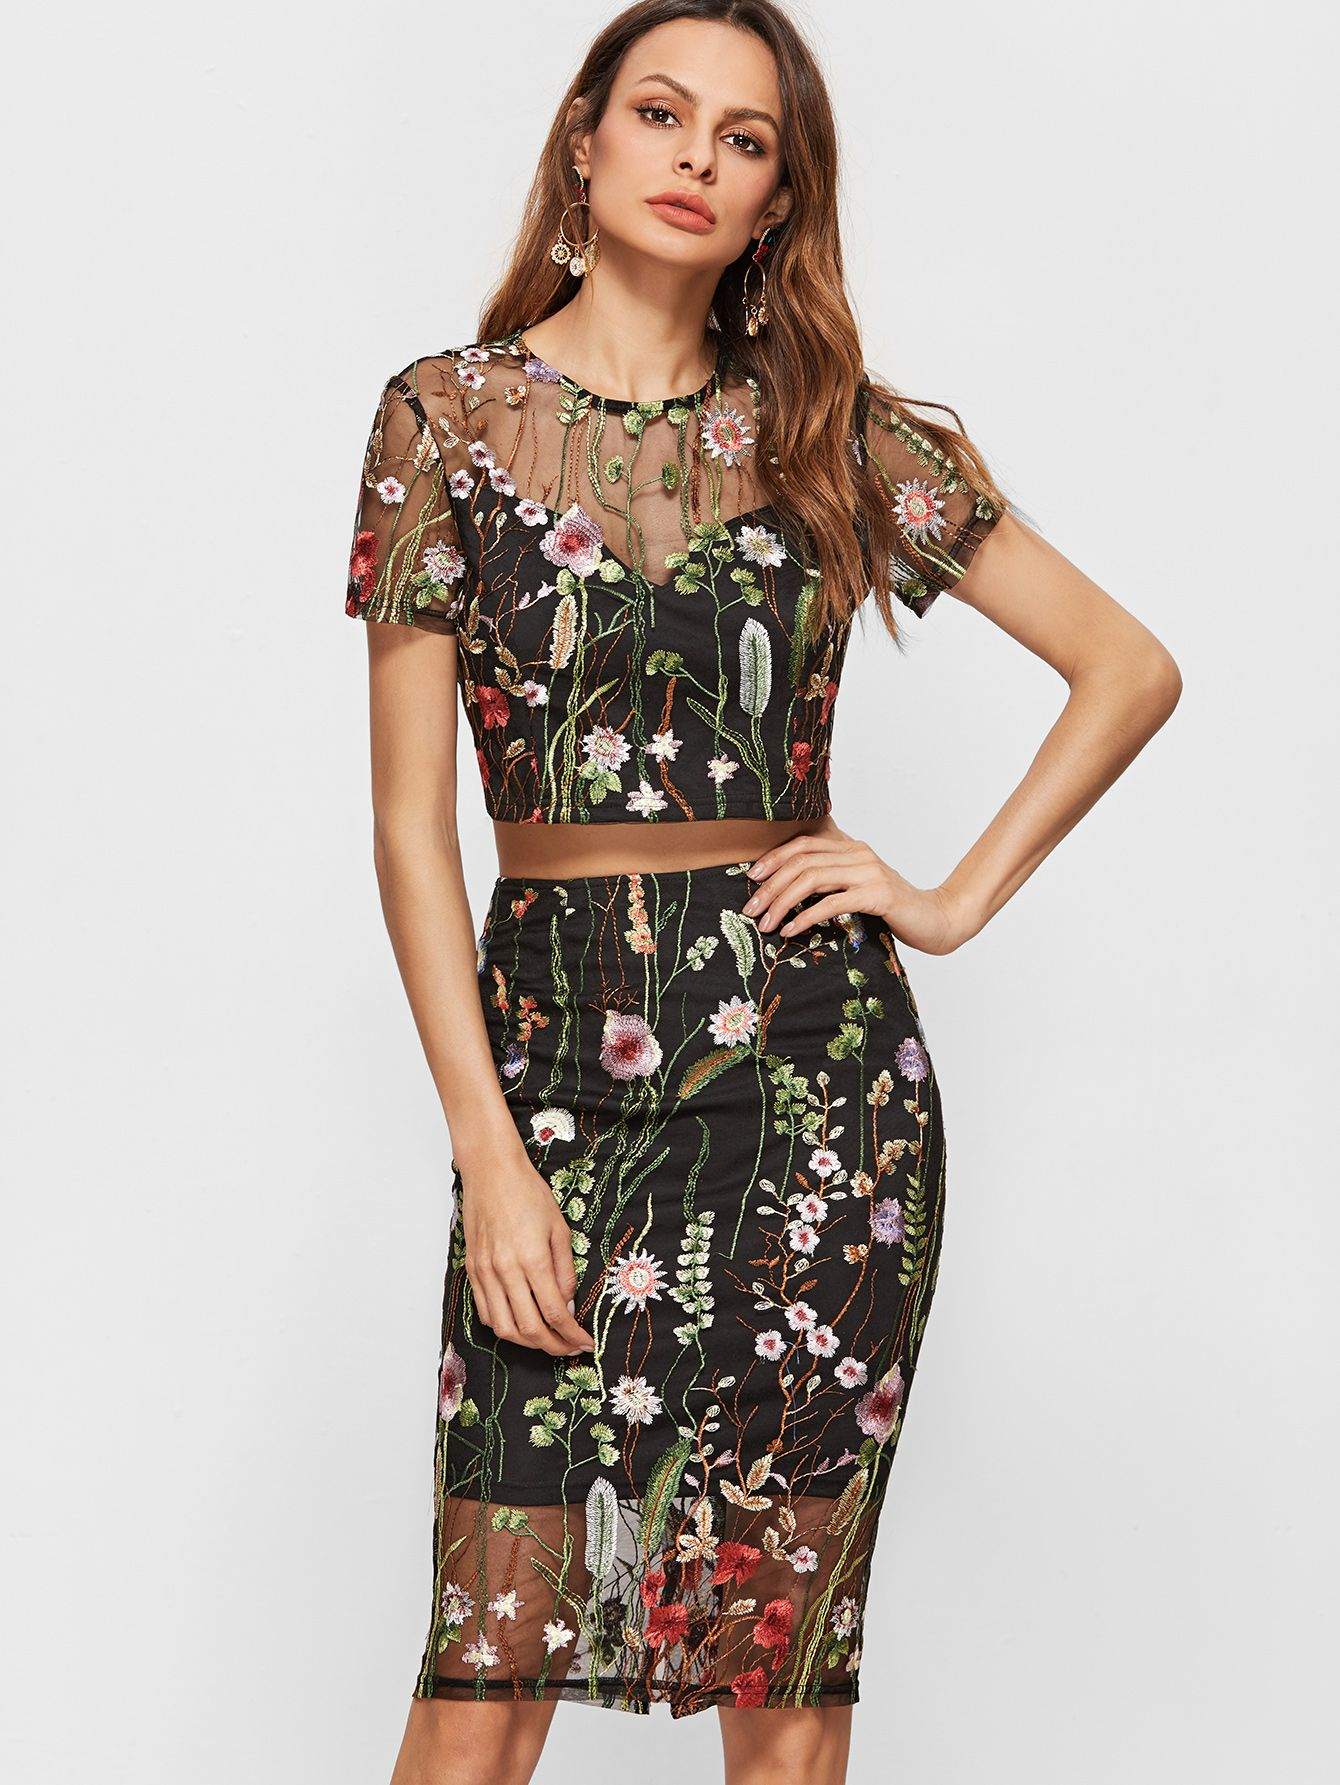 a68bf1ecf6 Shop Black Botanical Embroidered Mesh Overlay Crop Top With Pencil Skirt  online. SheIn offers Black Botanical Embroidered Mesh Overlay Crop Top With  Pencil ...